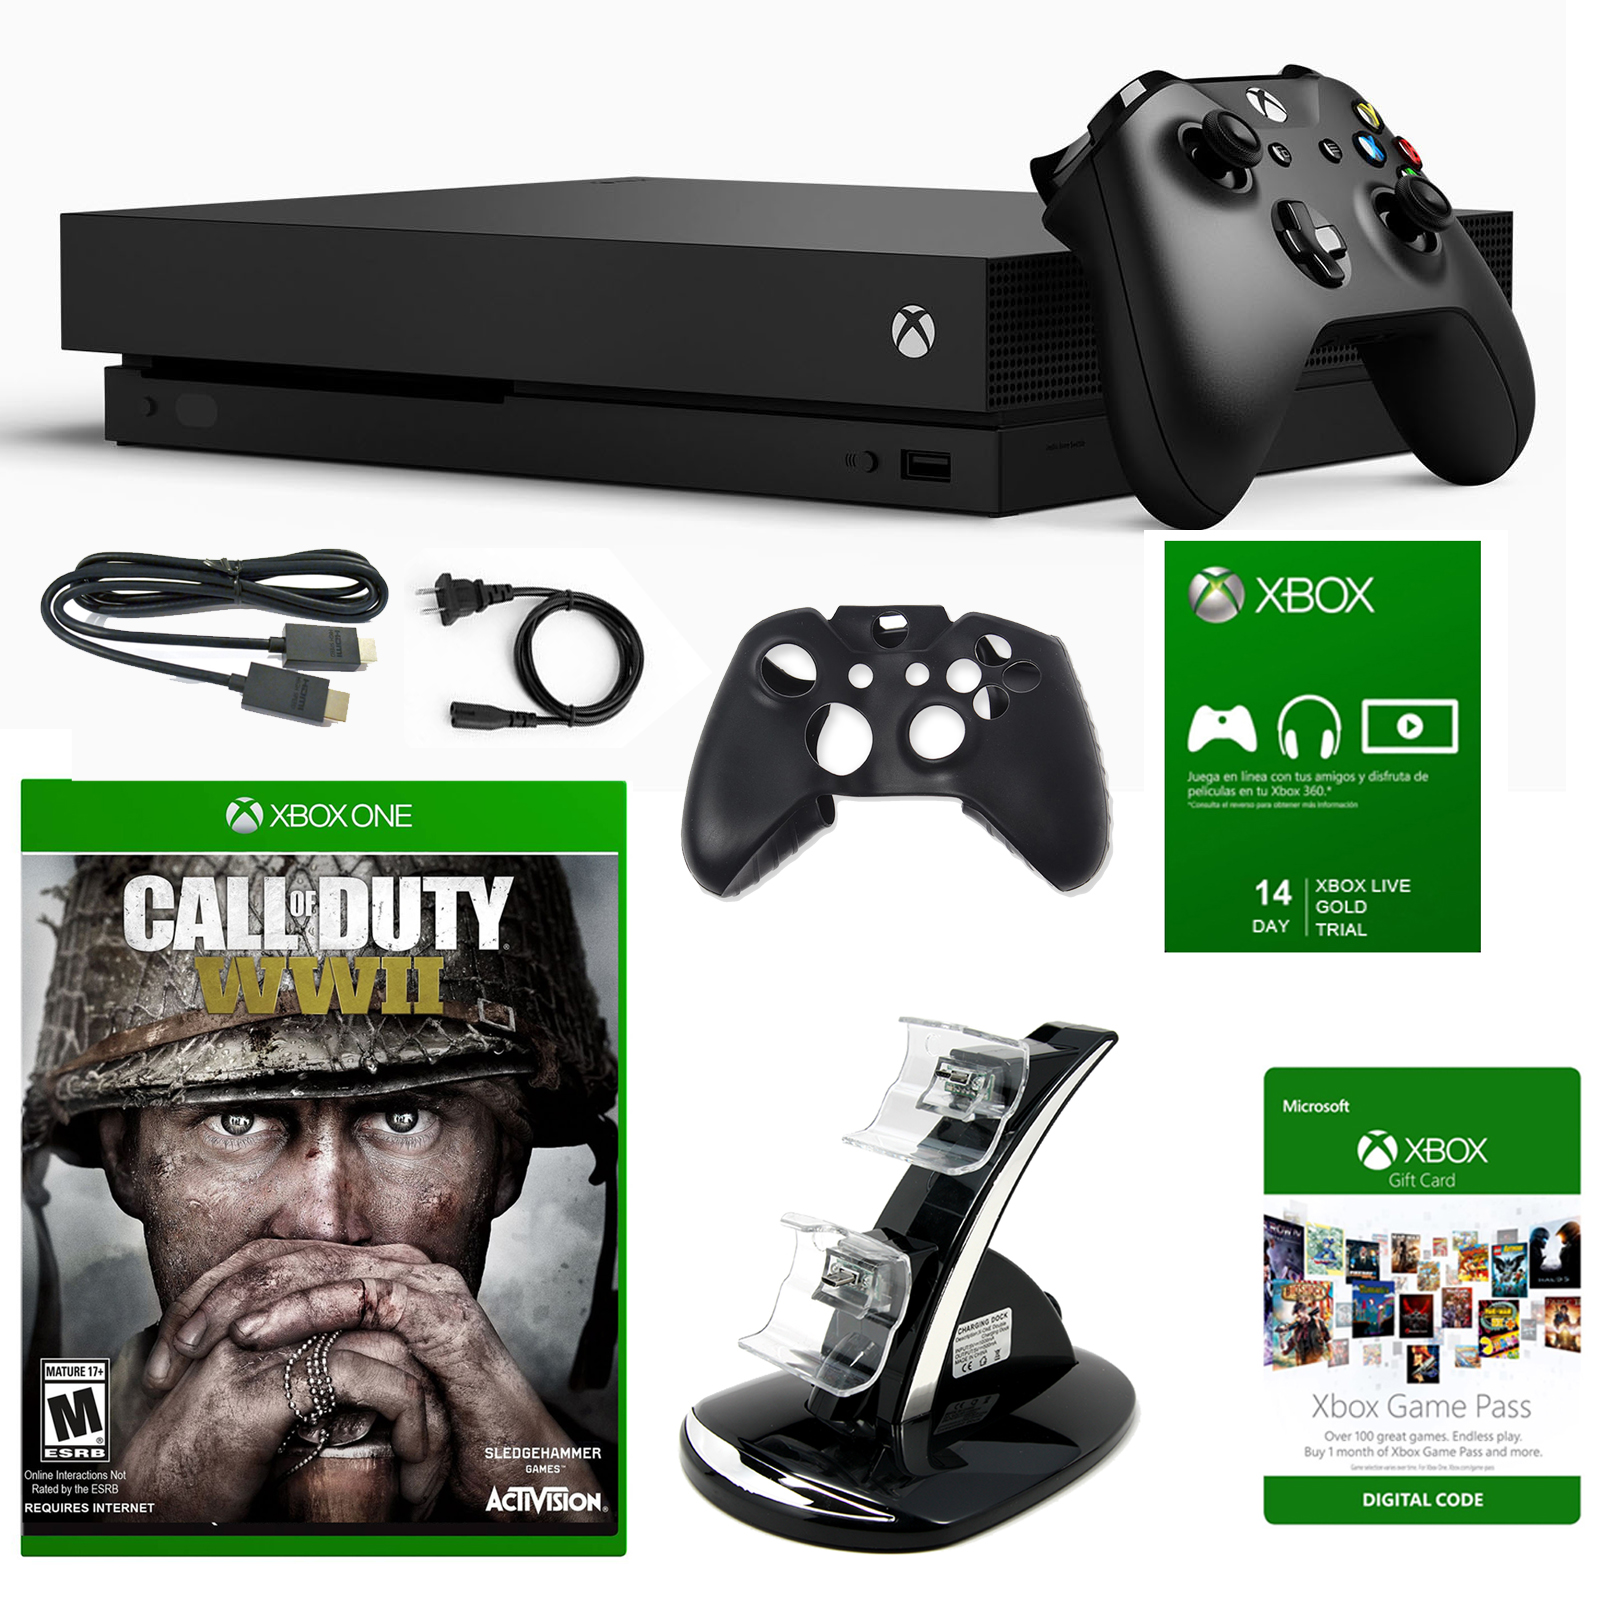 Xbox One X 1TB Console with COD WWII and Accessories